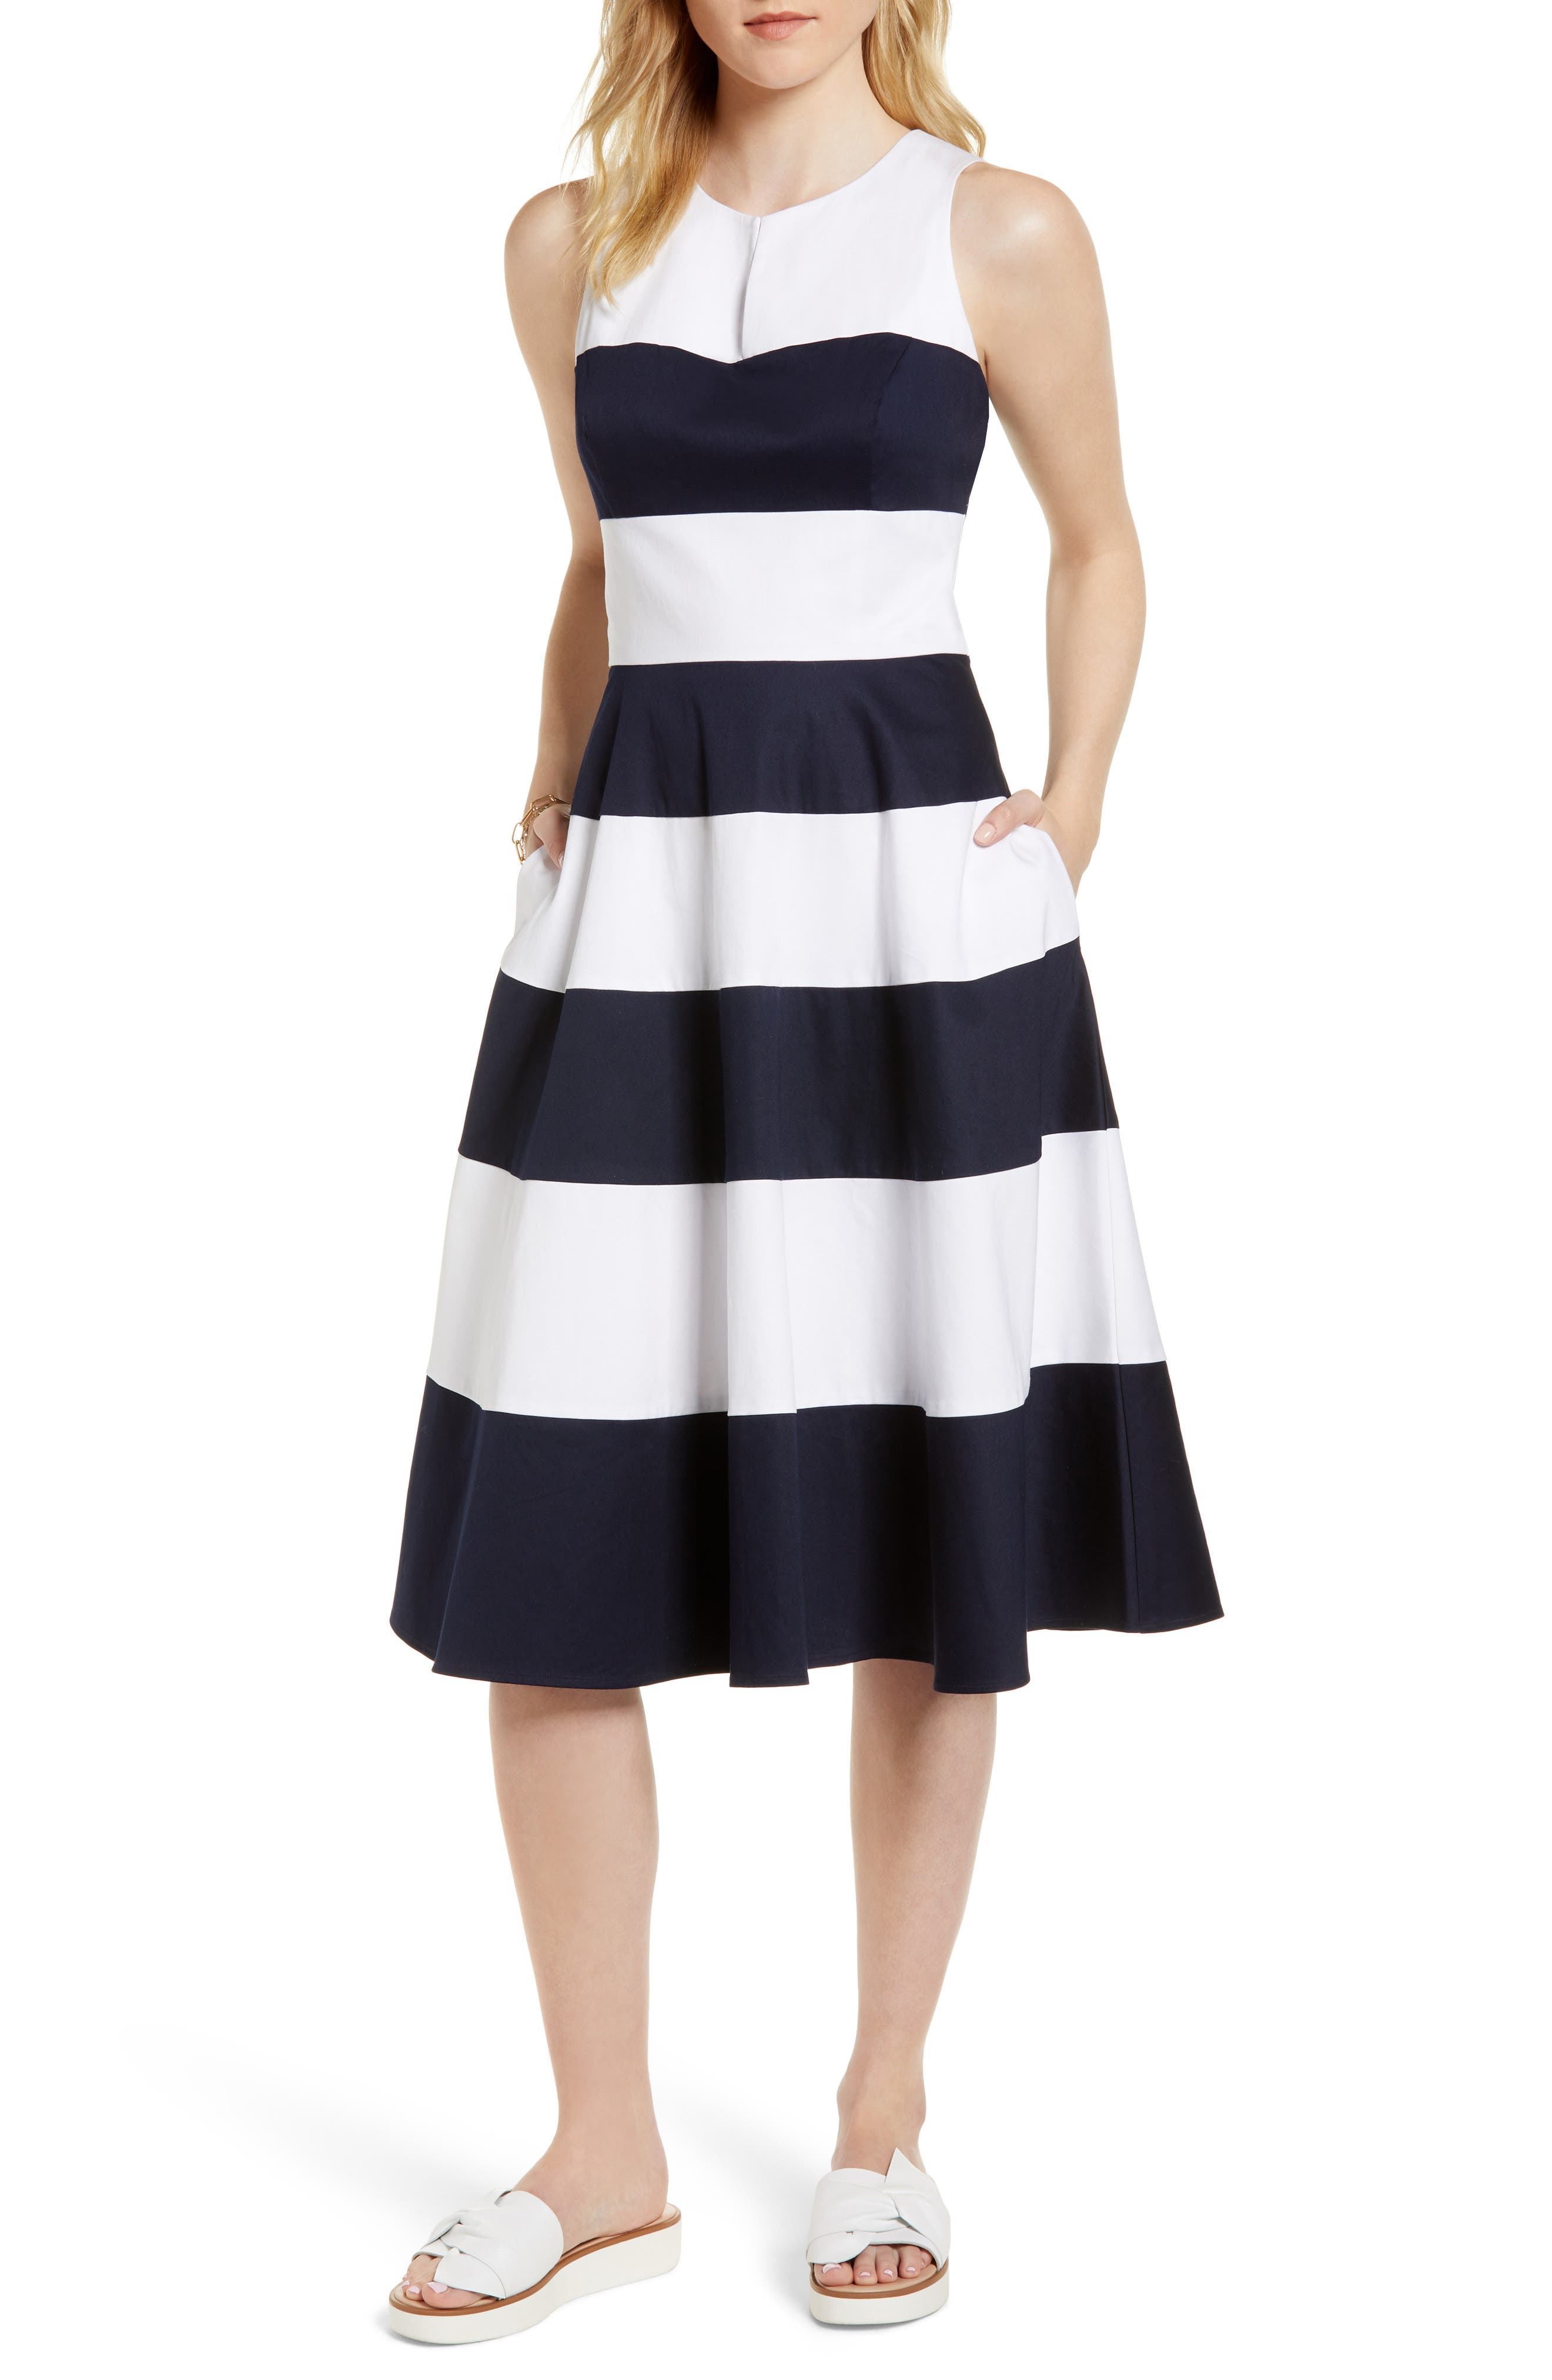 Alternate Image 1 Selected - 1901 Stripe Fit & Flare Dress